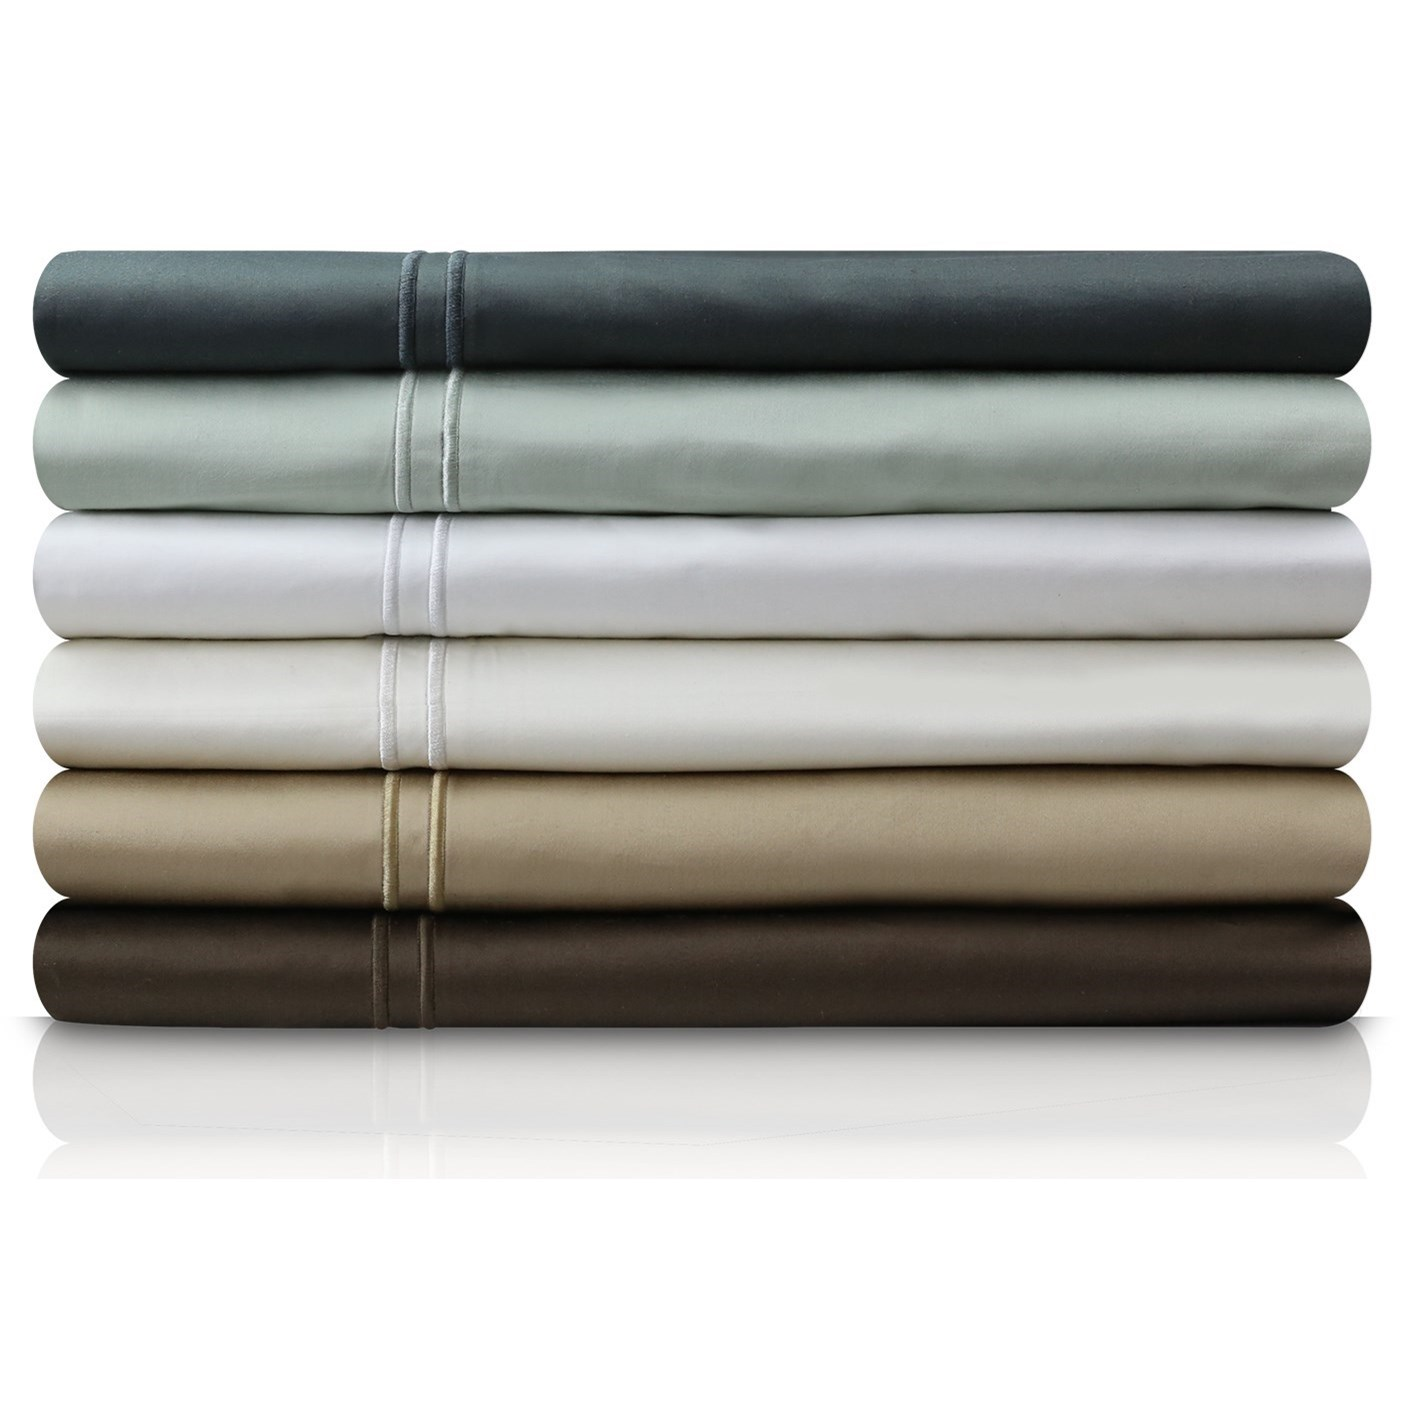 Malouf Egyptian Cotton Queen 600 TC Egyptian Cotton Sheet Set - Item Number: MA06QQSISS